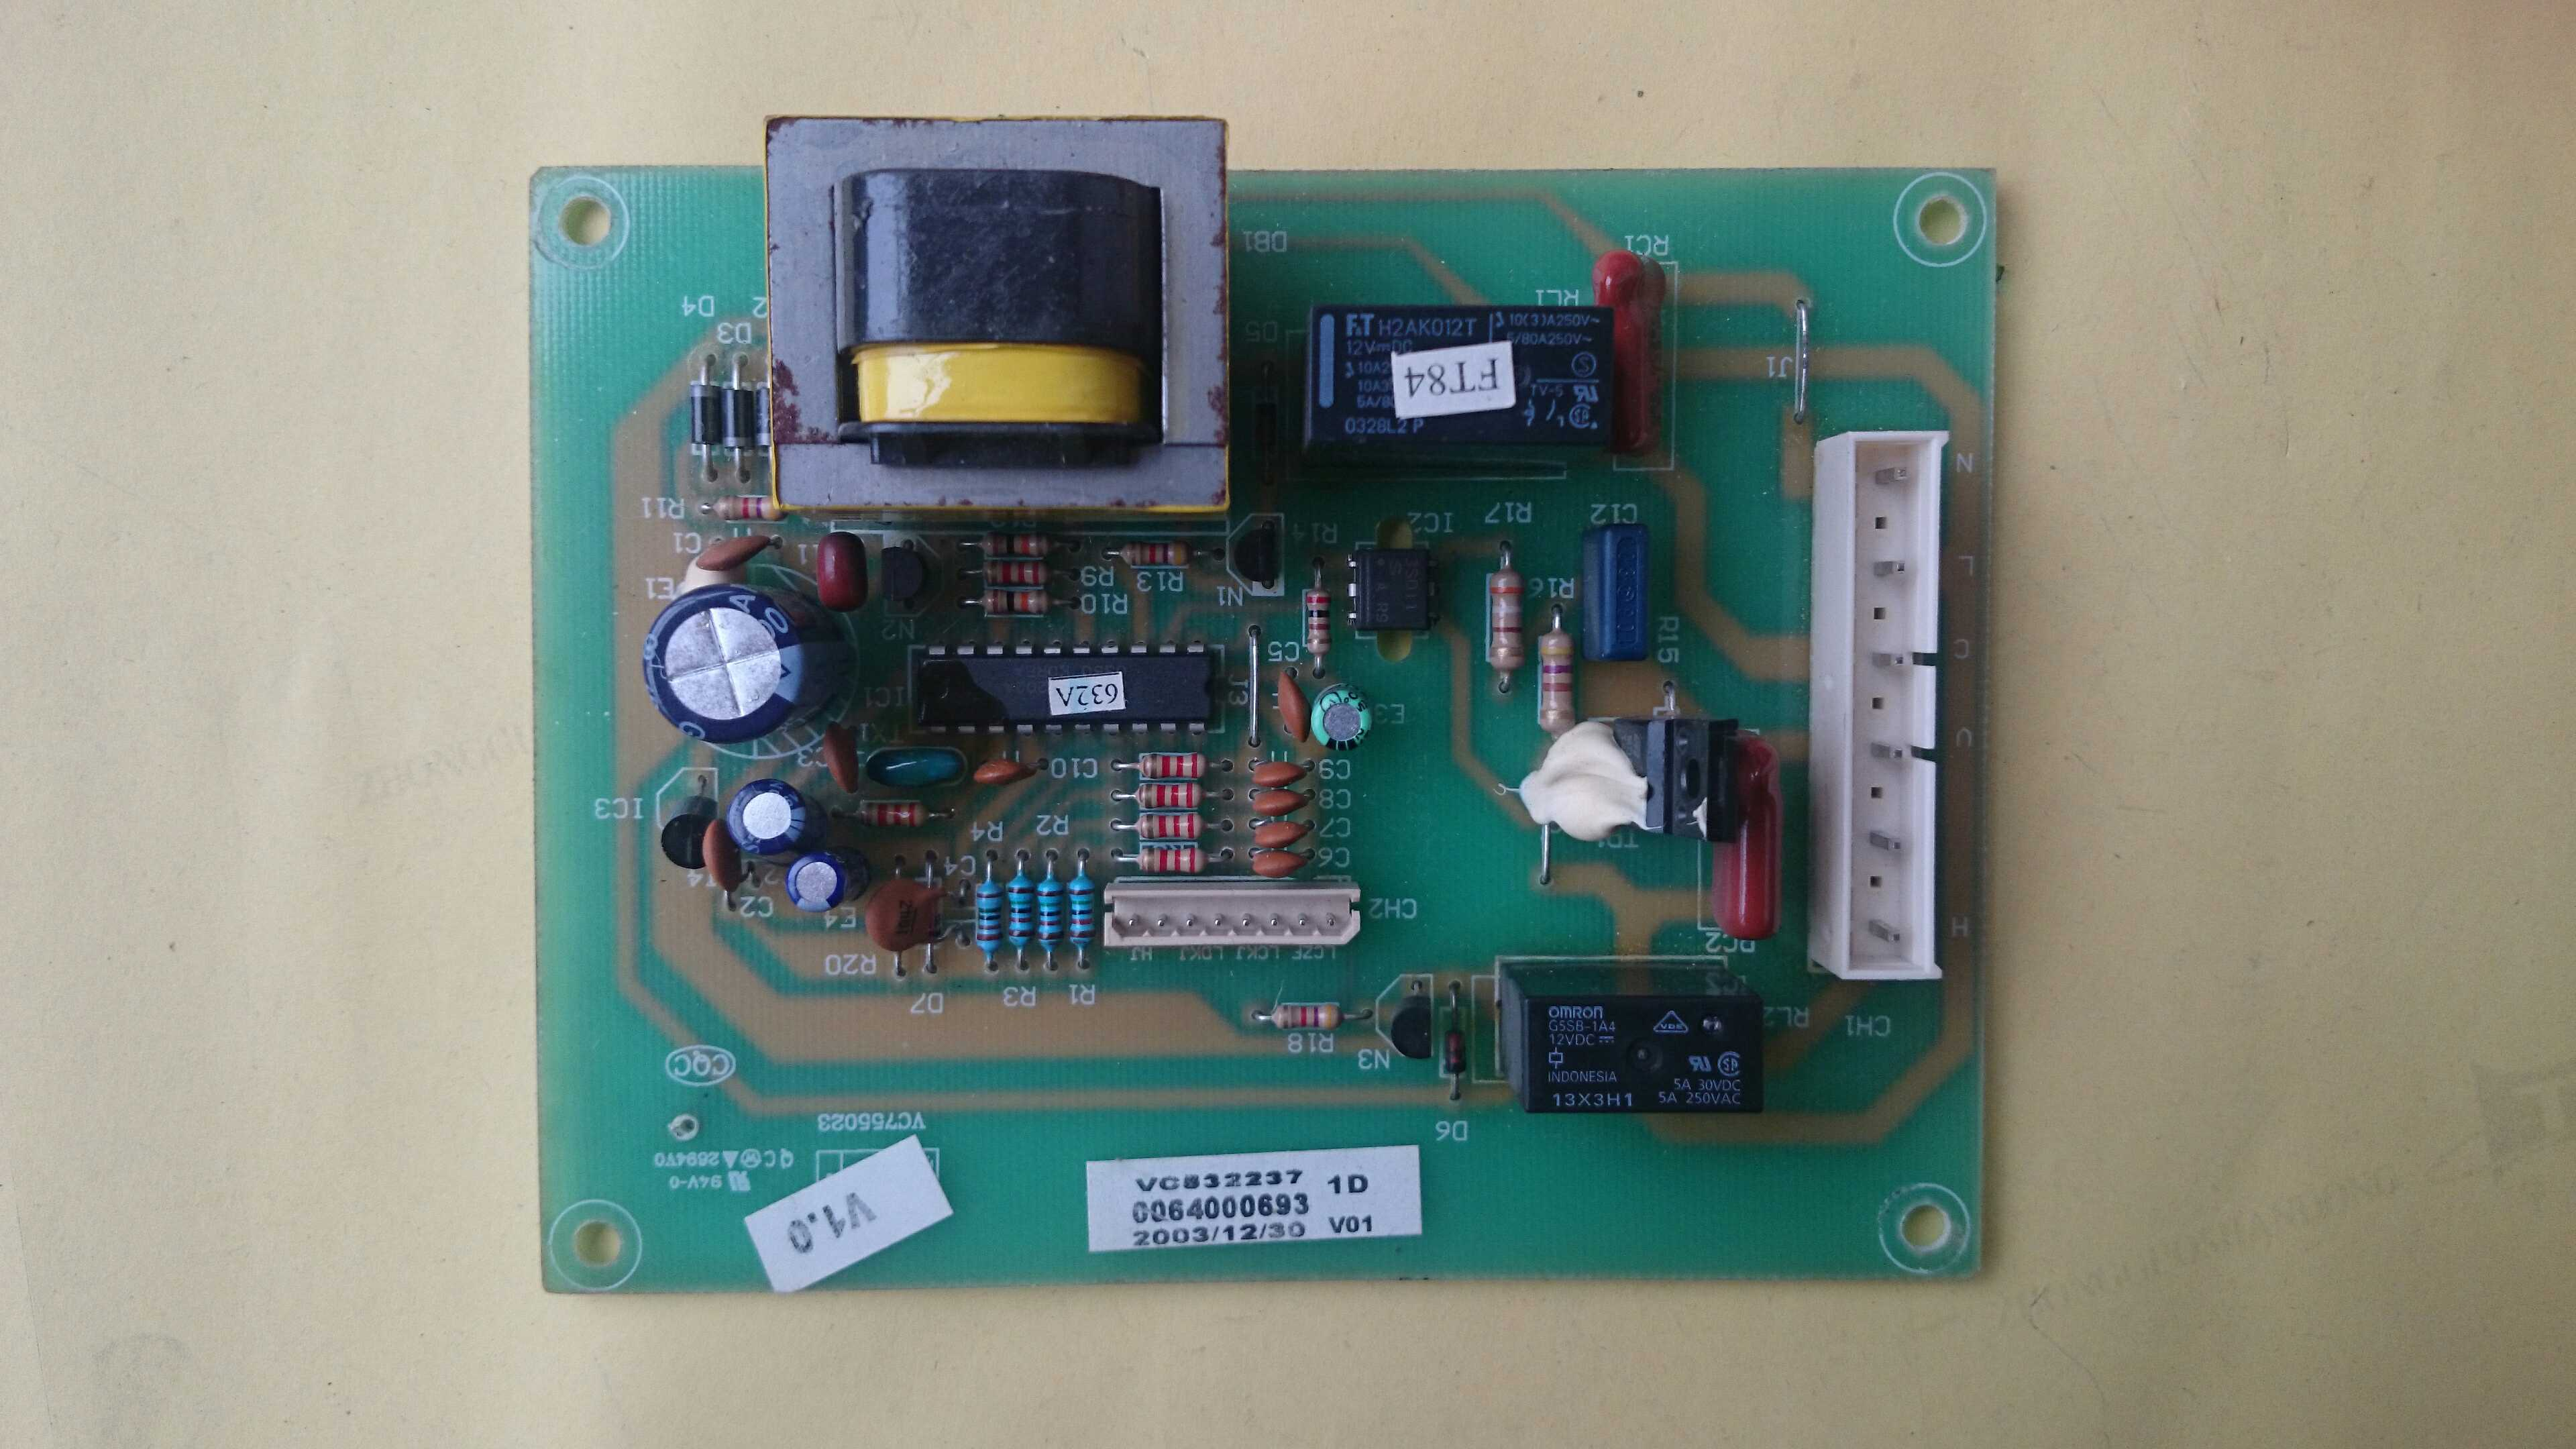 The original Haier refrigerator power main control board 0064000693 for Haier refrigerator BCD-206ZMD телевизор haier le42k5500tf